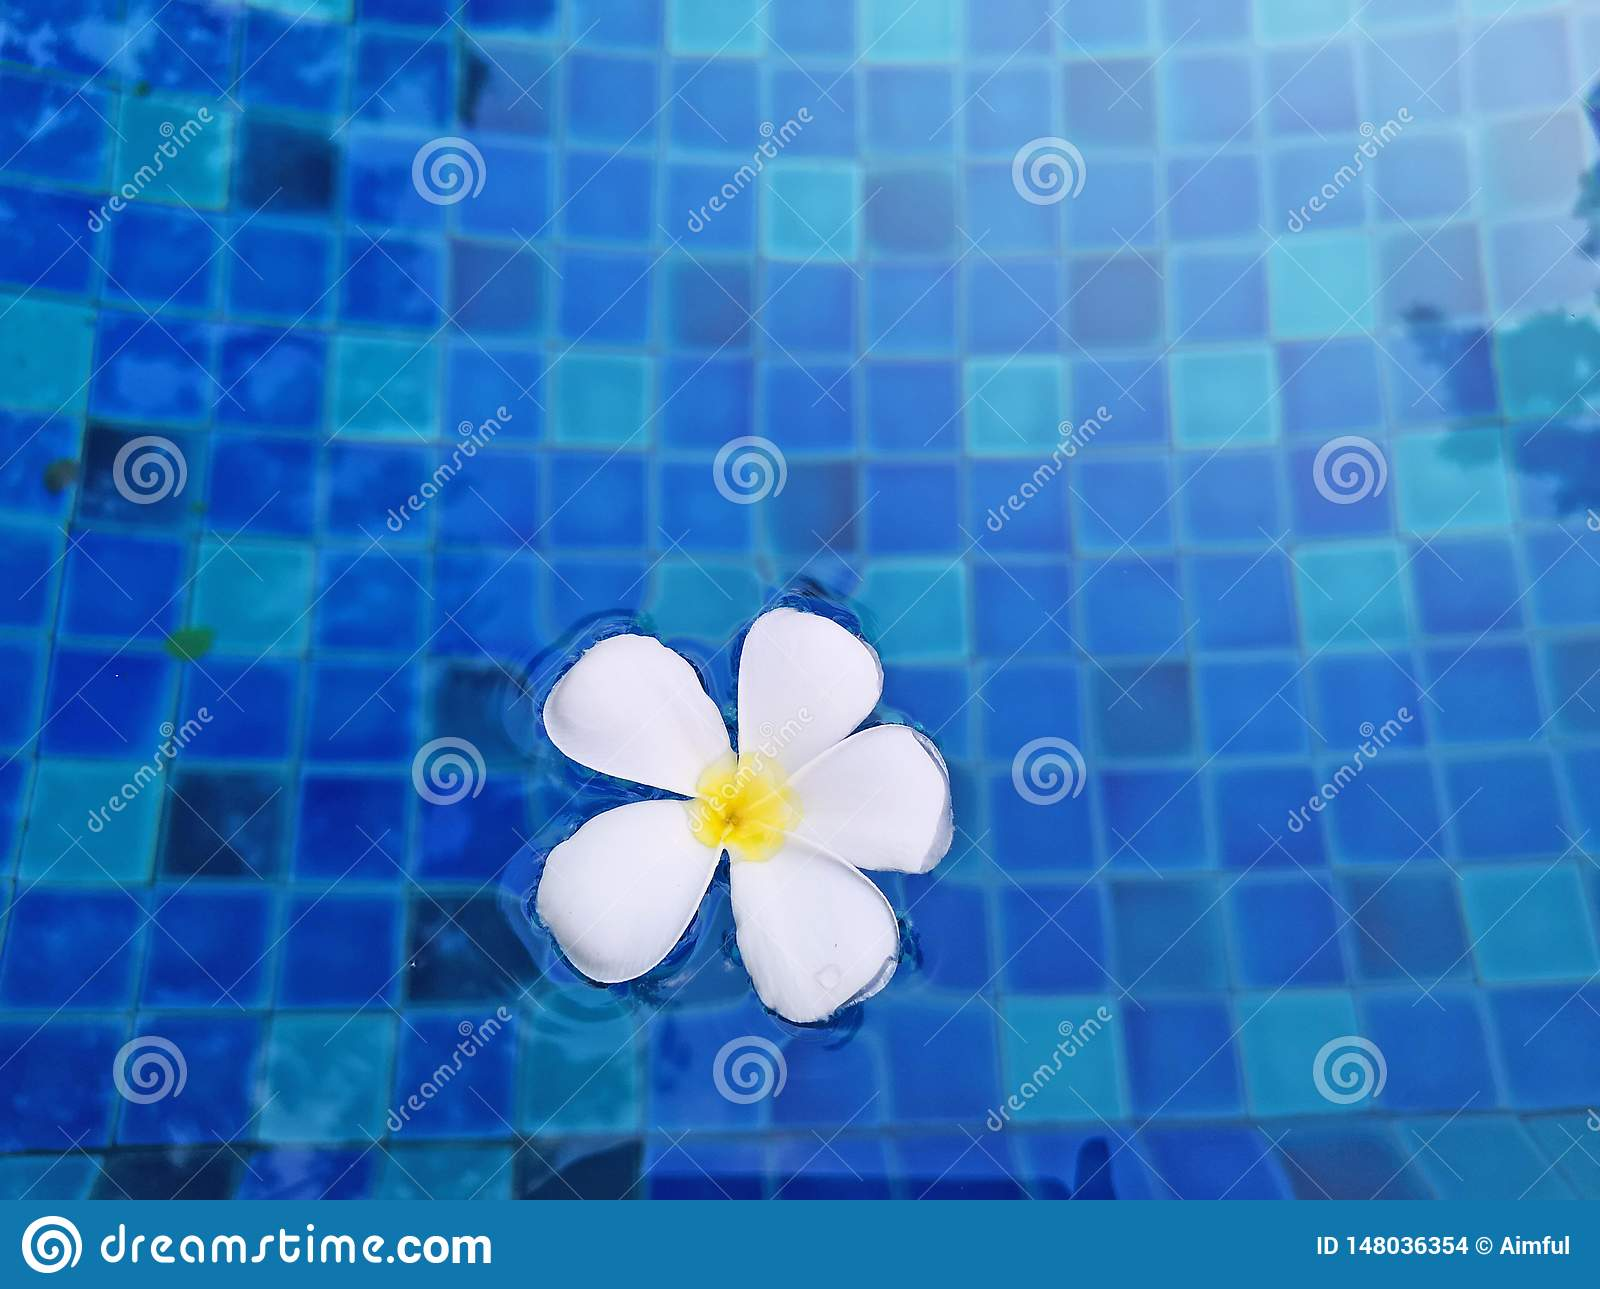 White petals of fragrant temple tree flower plant on waving vivid turquoise blue water in the swimming pool